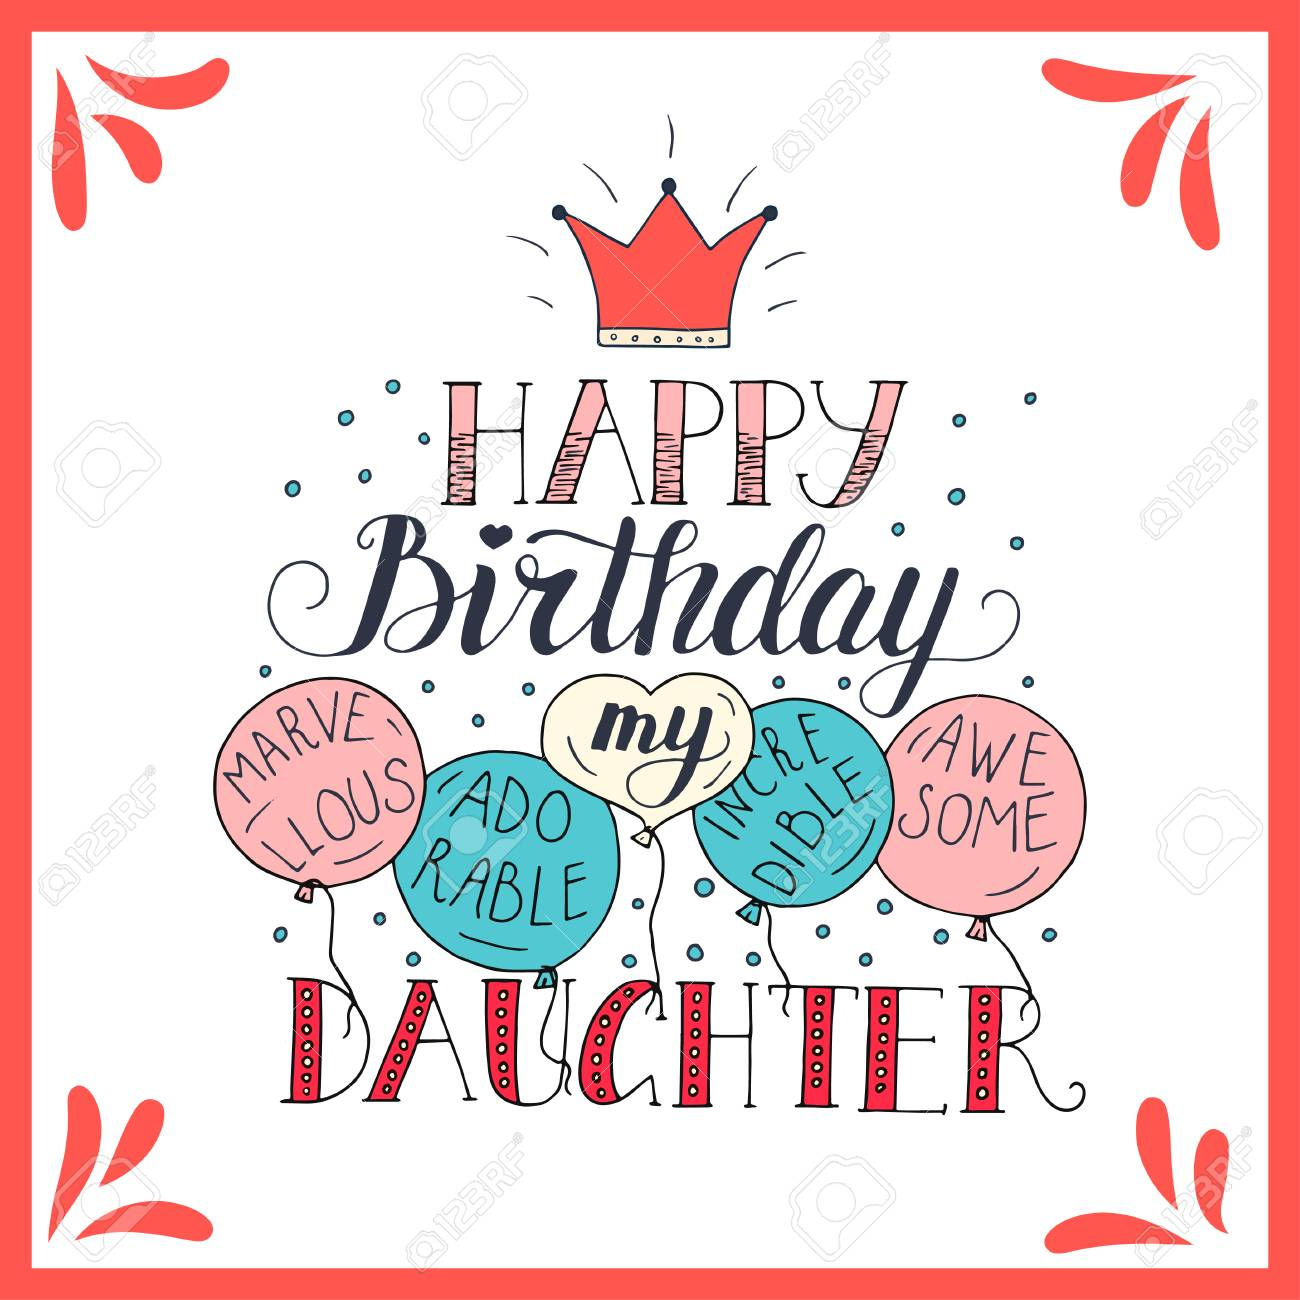 Color Vector Birthday Card For Daughter Royalty Free Cliparts Vectors And Stock Illustration Image 79479516